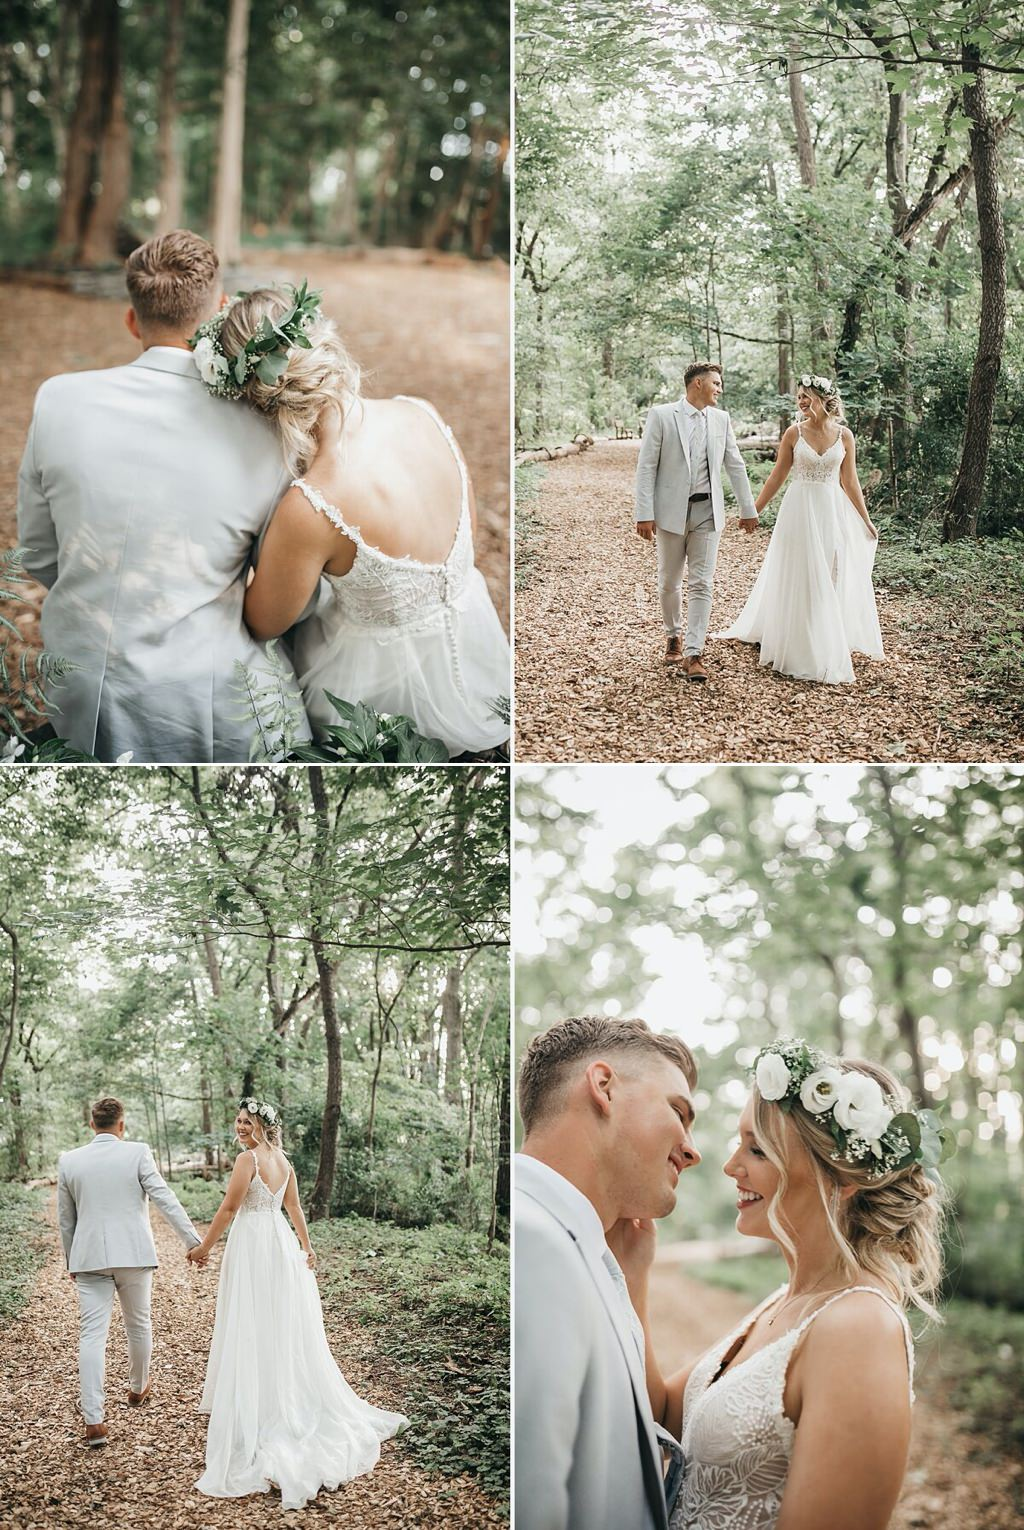 A bride and groom walking in the woods on their wedding day at Stone Mill Inn